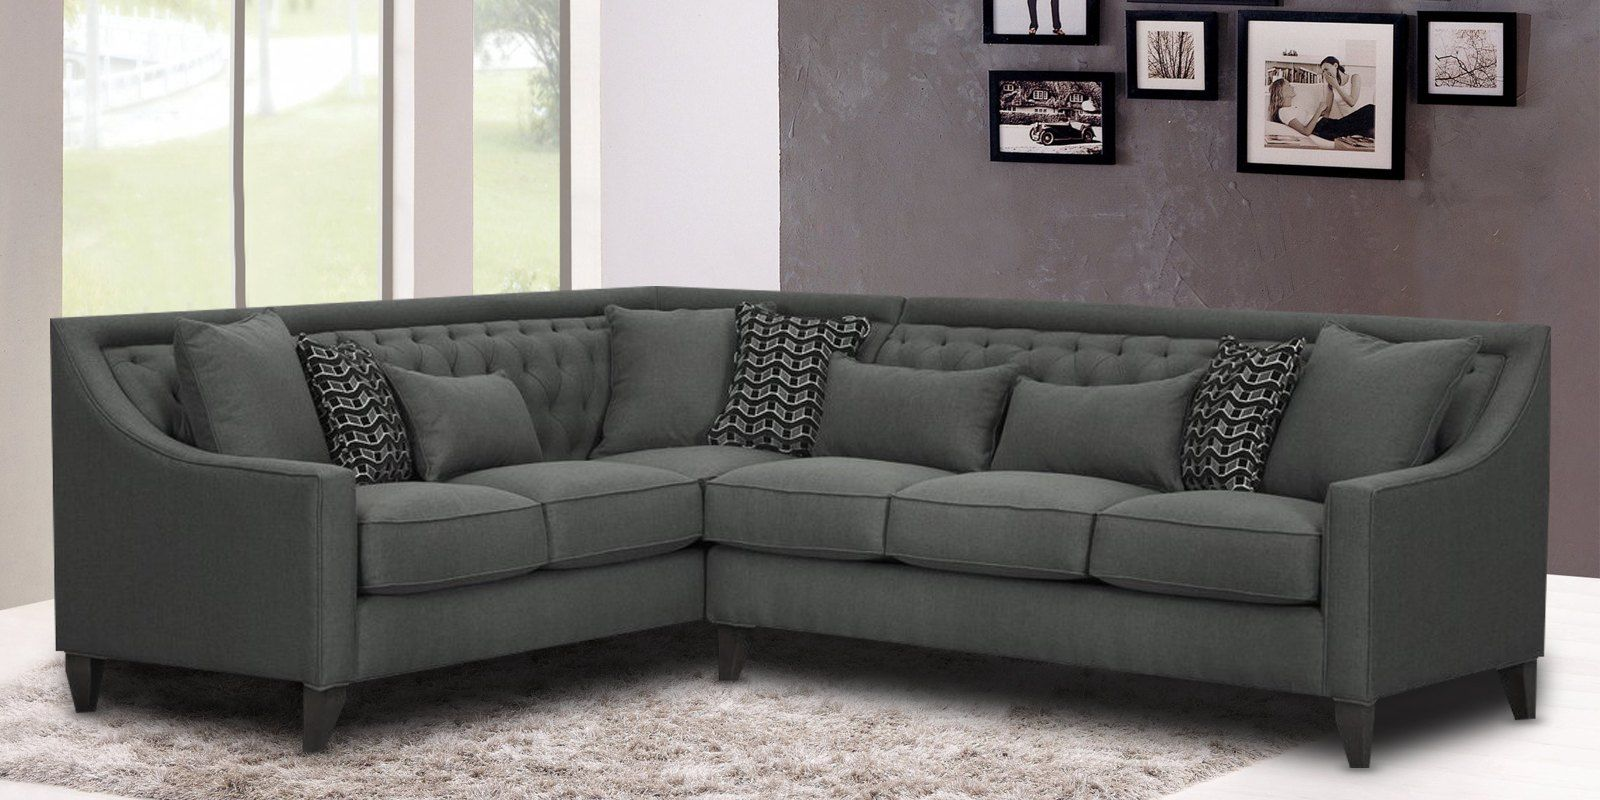 Nirvana Lhs Sofa In Grey Colour Furniture L Shaped Sofa Sectional Sofa